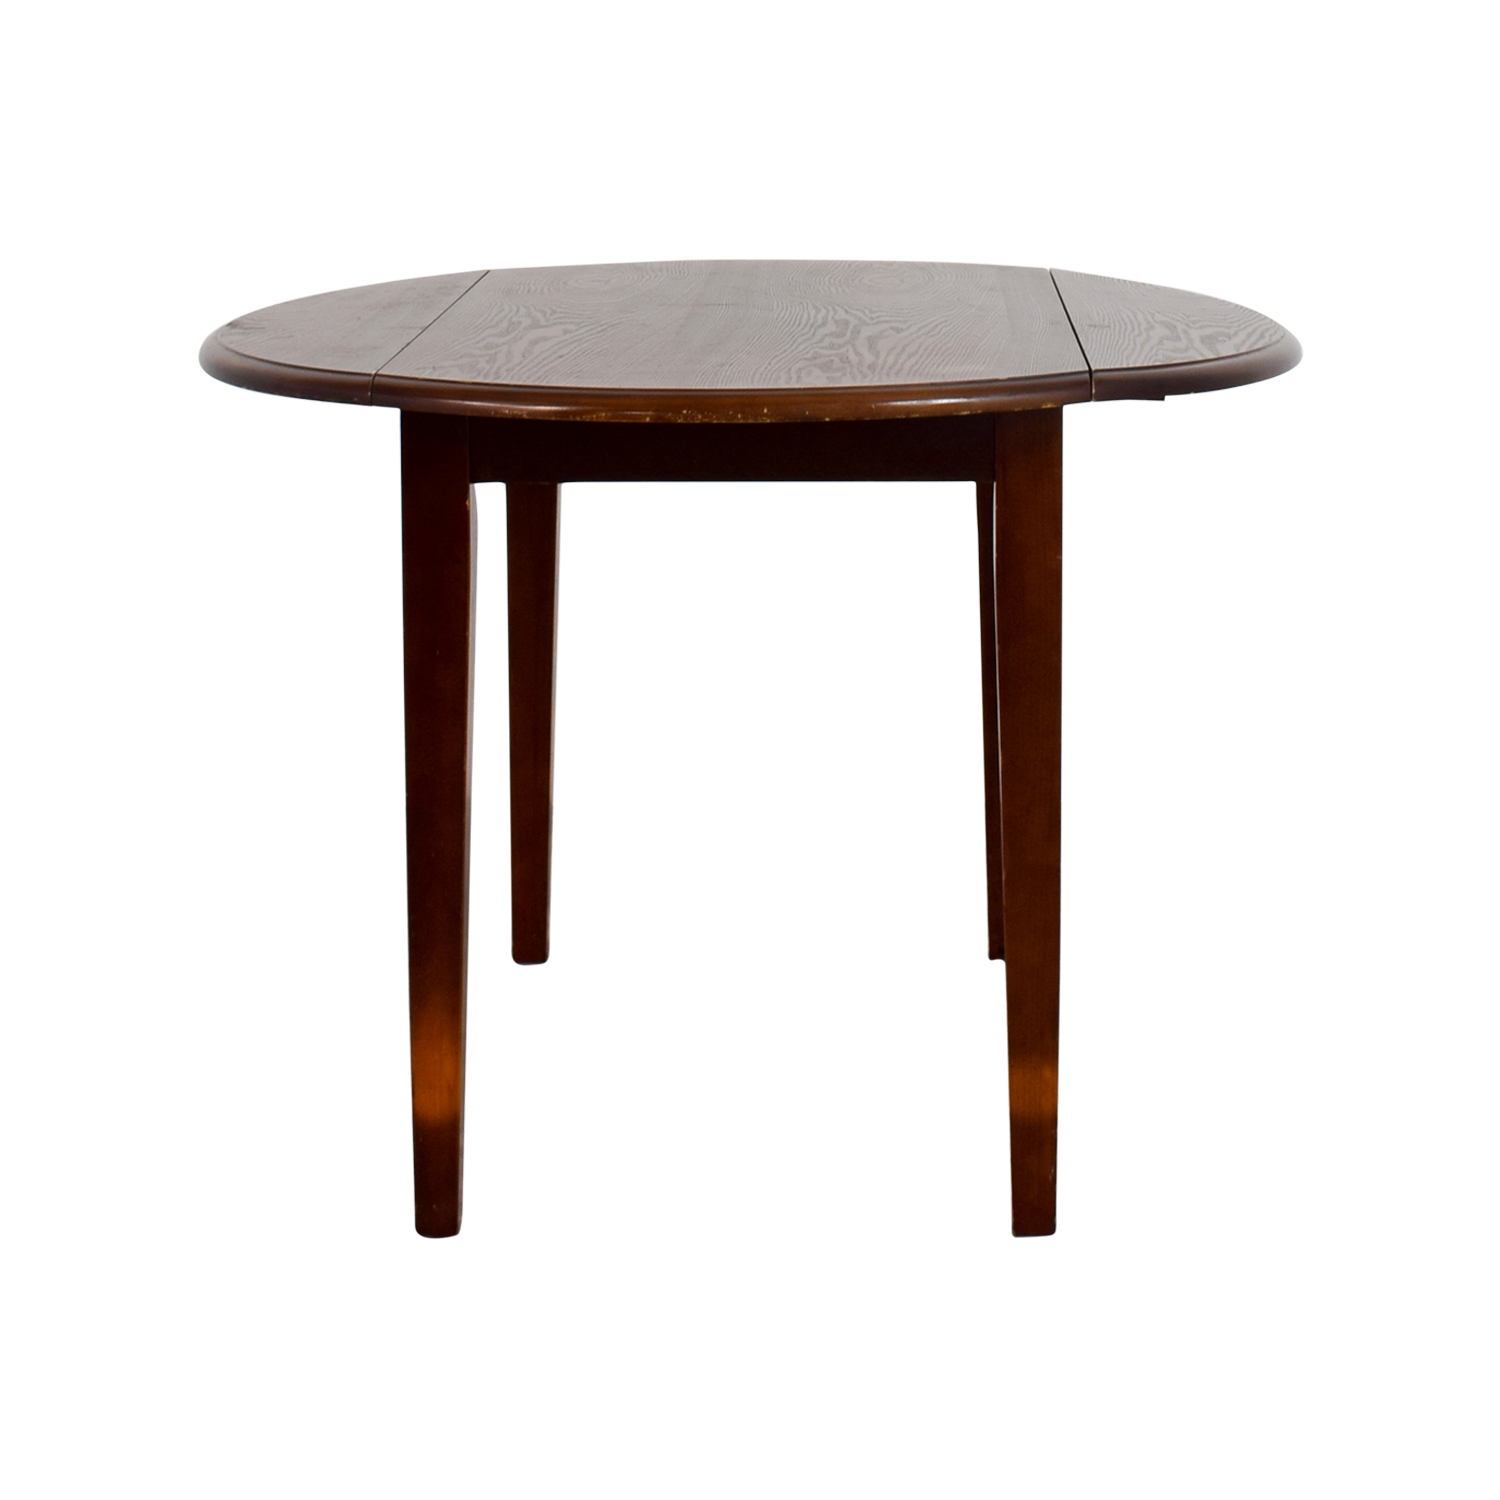 Round Convertible Dining Table price